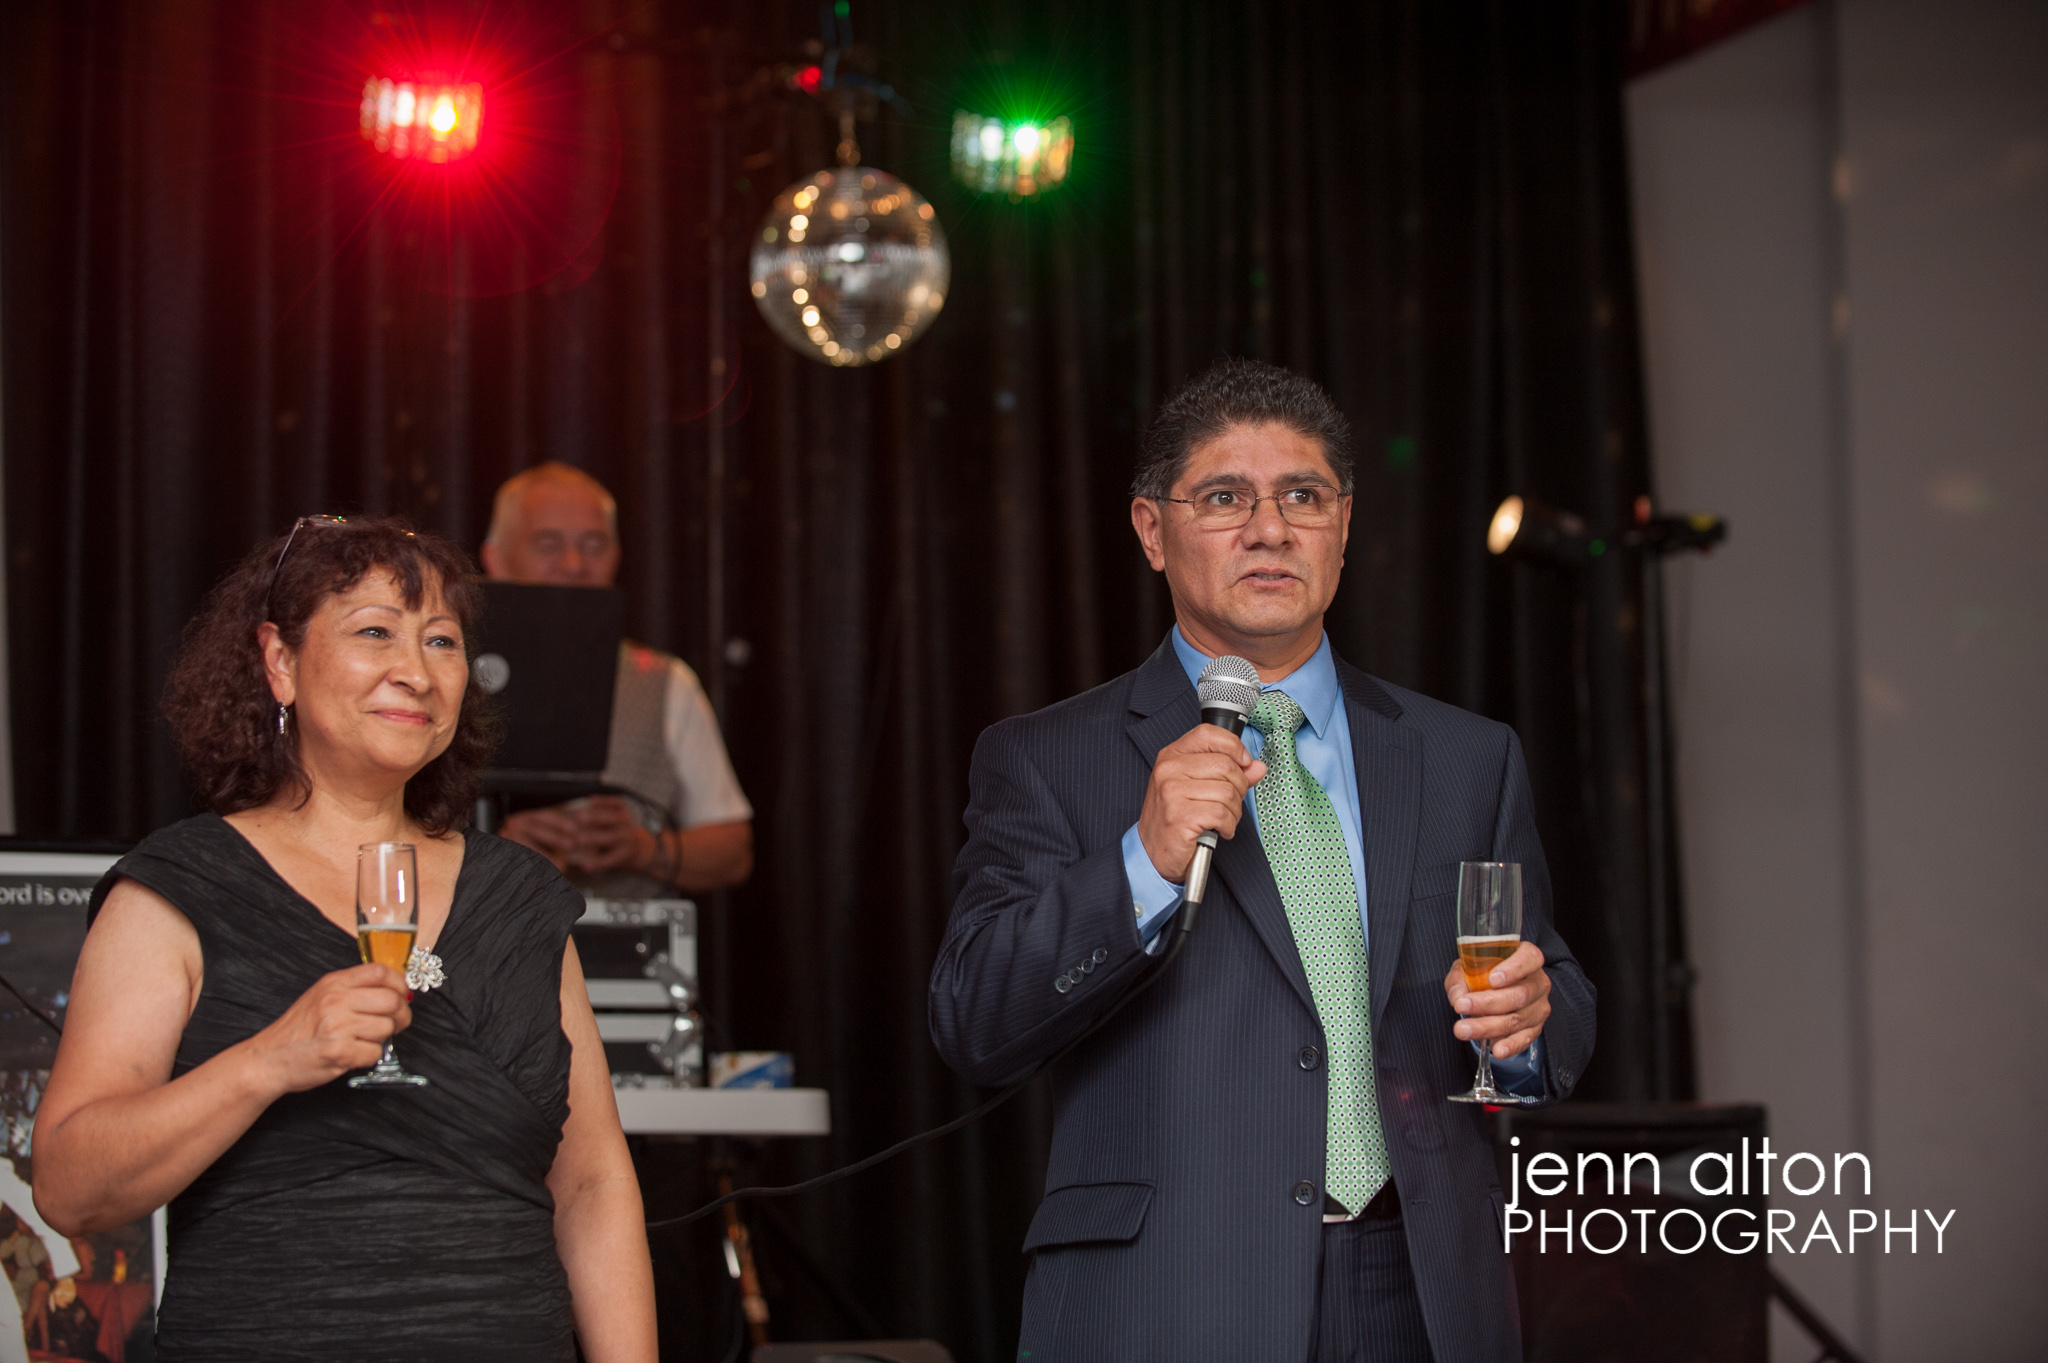 Father toasting Quinceanera and thanking guests